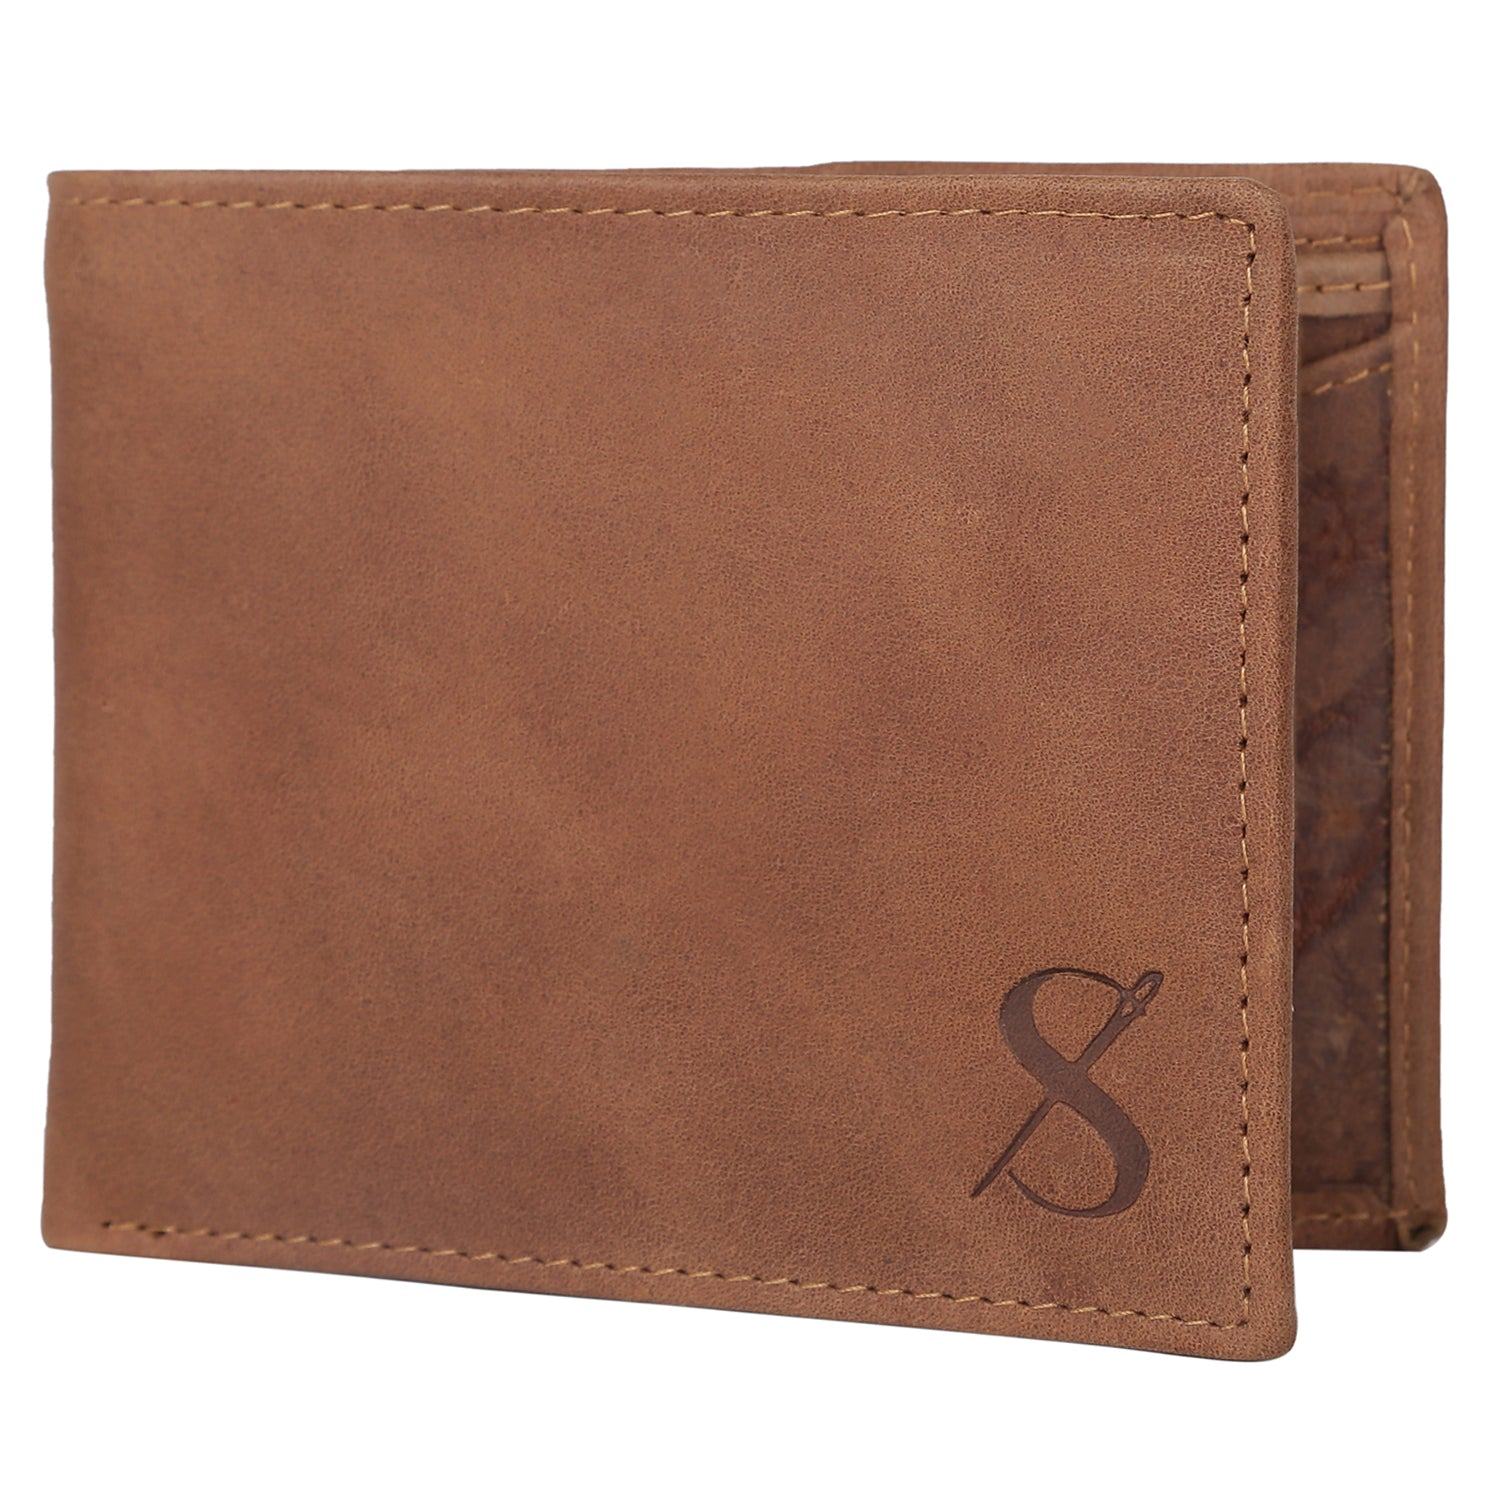 Stylish Men's Leather Tan Colour Wallet